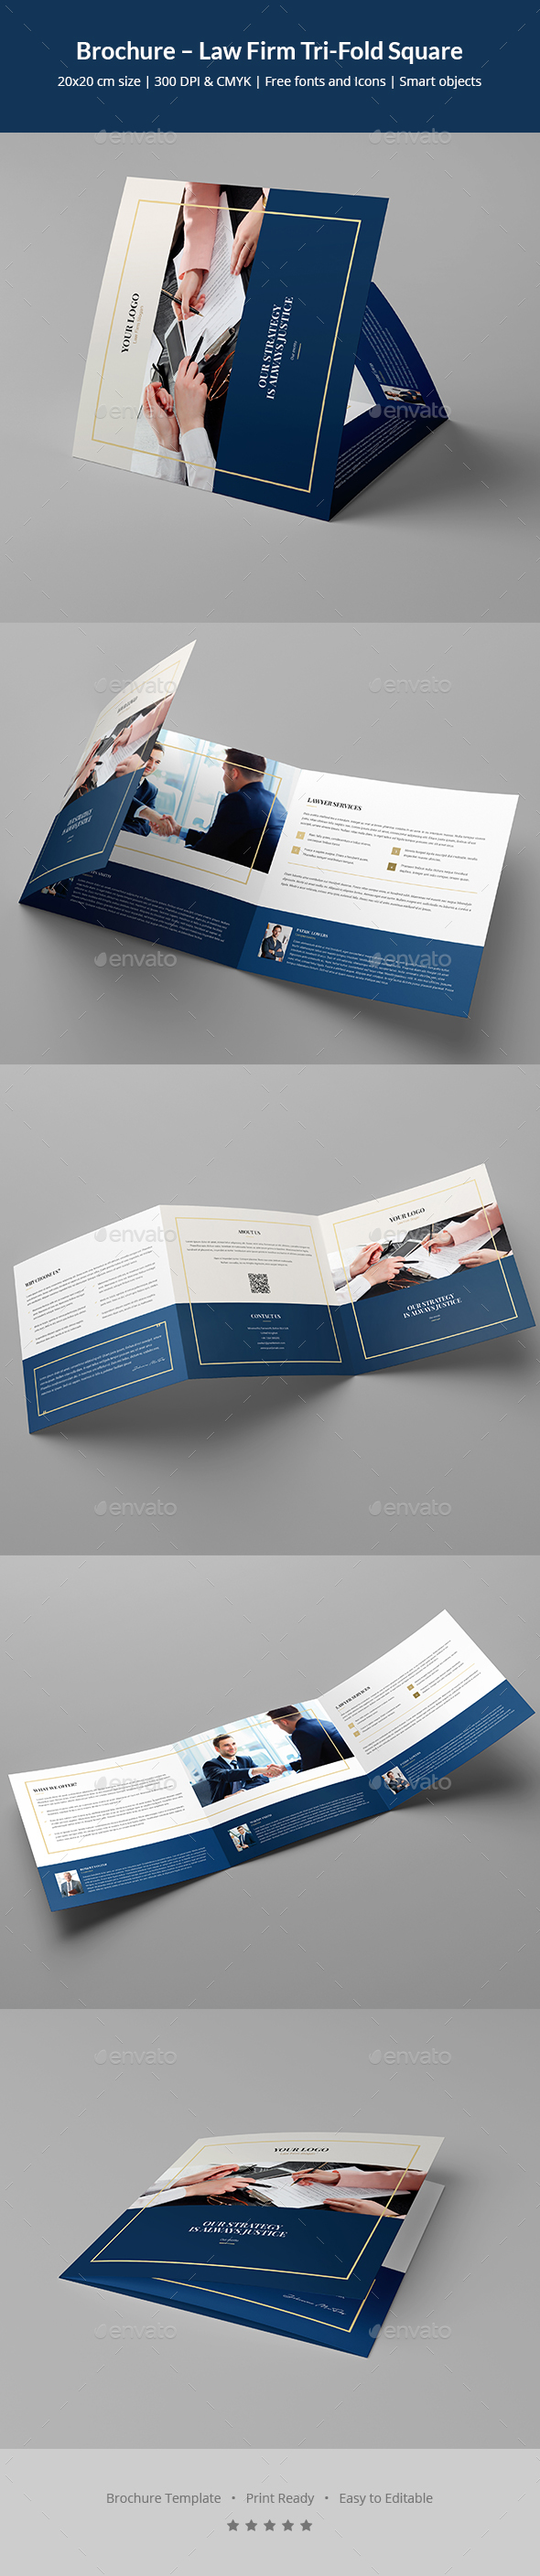 GraphicRiver Brochure Law Firm Tri-Fold Square 20687165